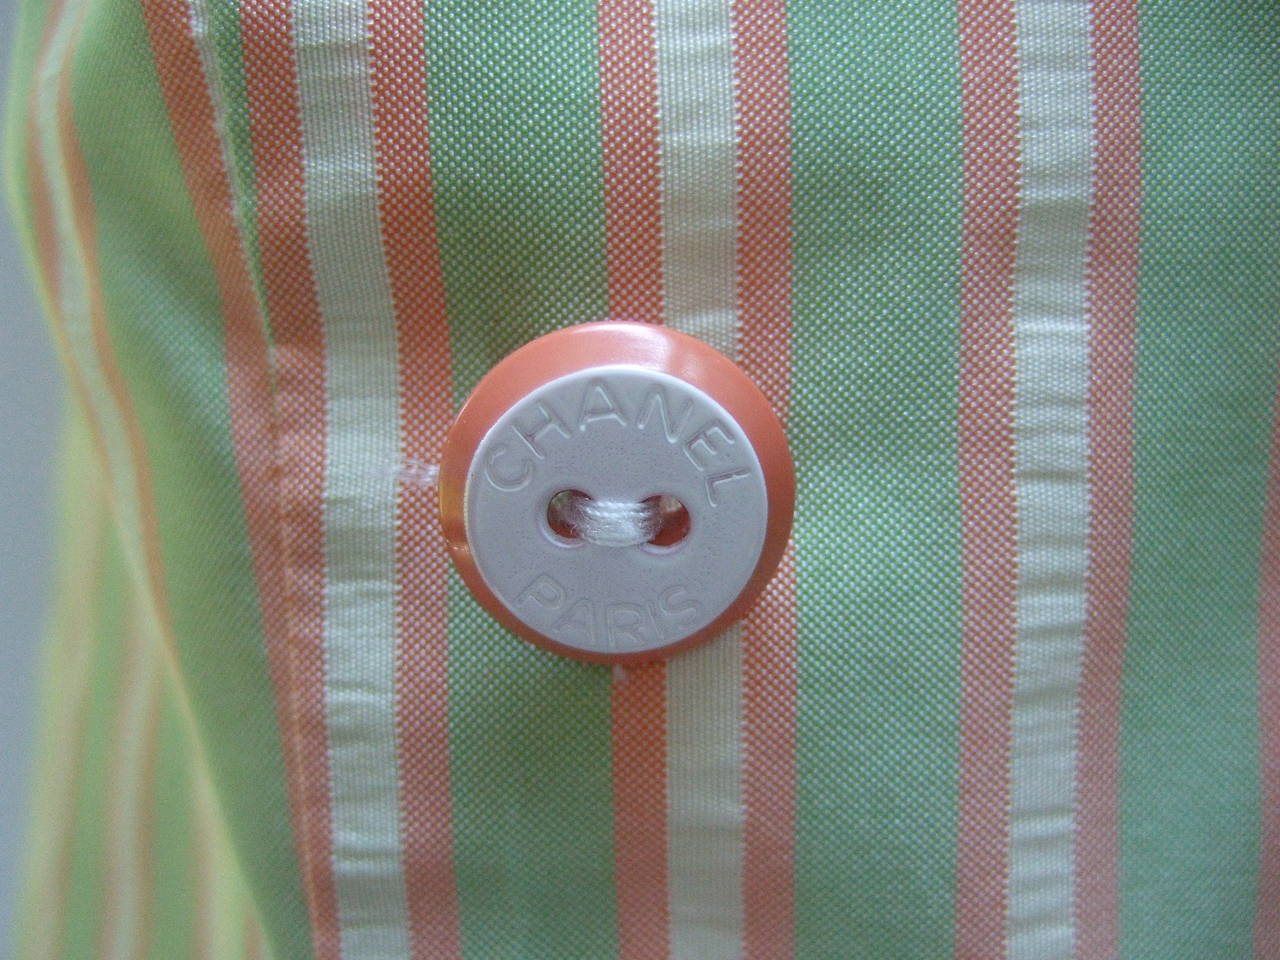 Chanel Striped Silk Sleeveless Blouse with Chanel Buttons Size 38 In Excellent Condition For Sale In Santa Barbara, CA